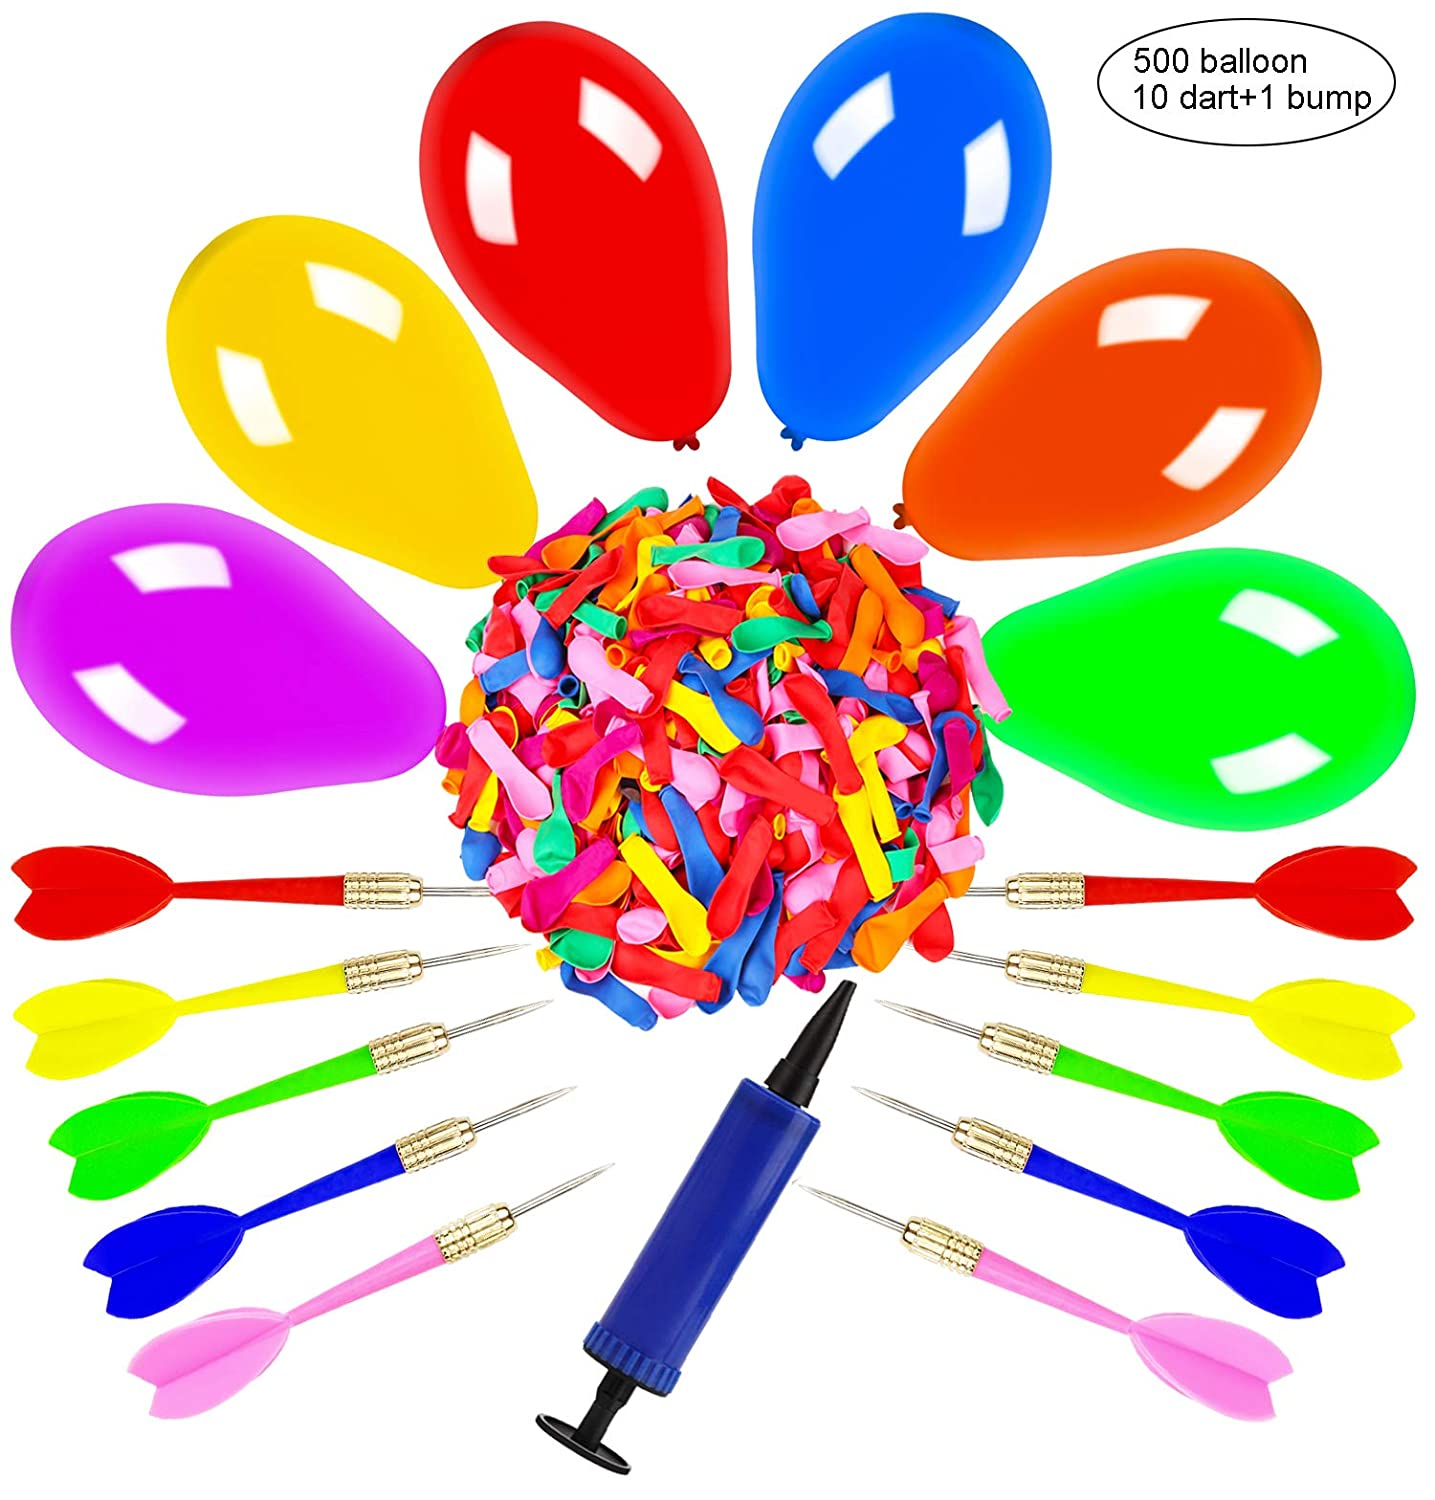 50 RED PLASTIC CARNIVAL DARTS METAL TIP POP A BALLOON GAME PARTY FUN ACTIVITY